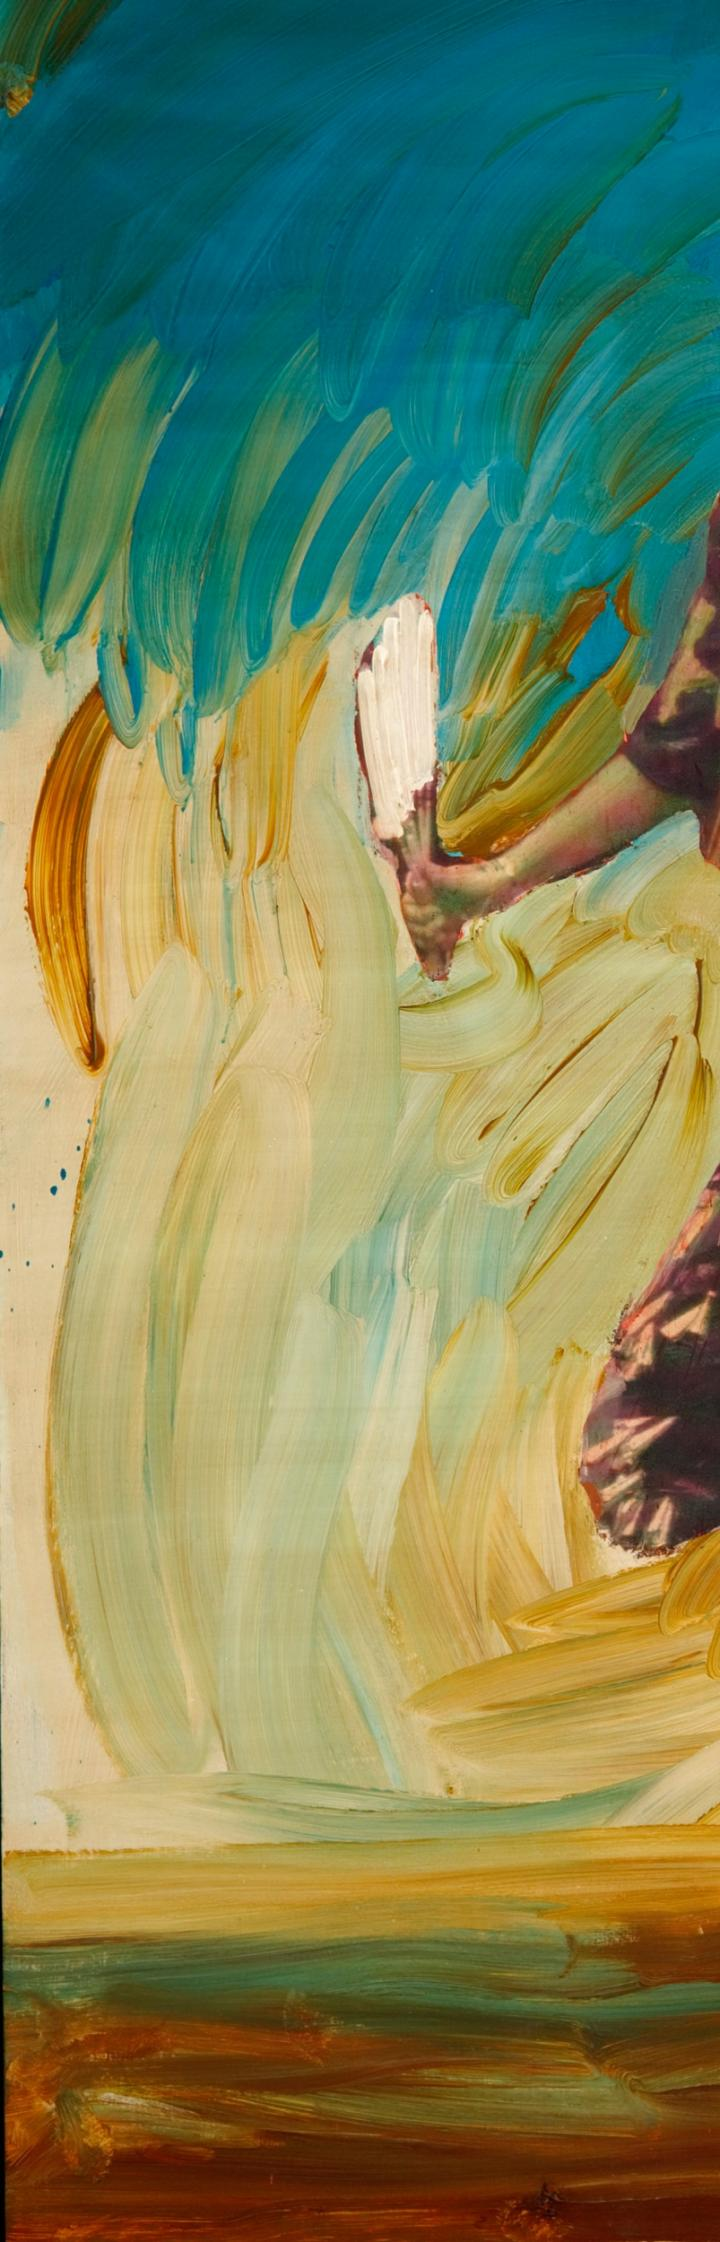 A detail of a painting of a Native American woman dancing